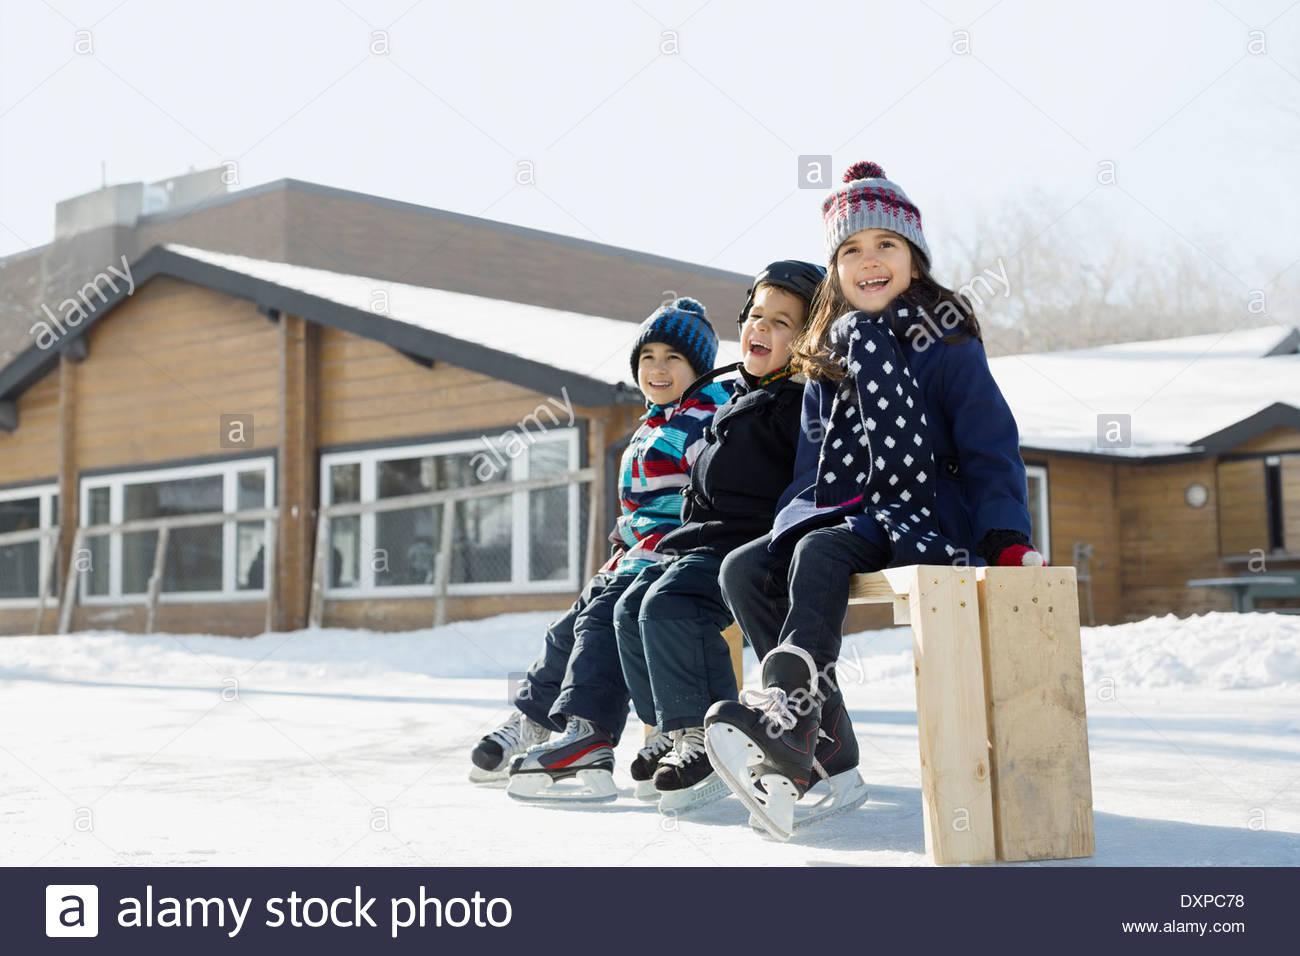 Siblings sitting on skating rink bench - Stock Image